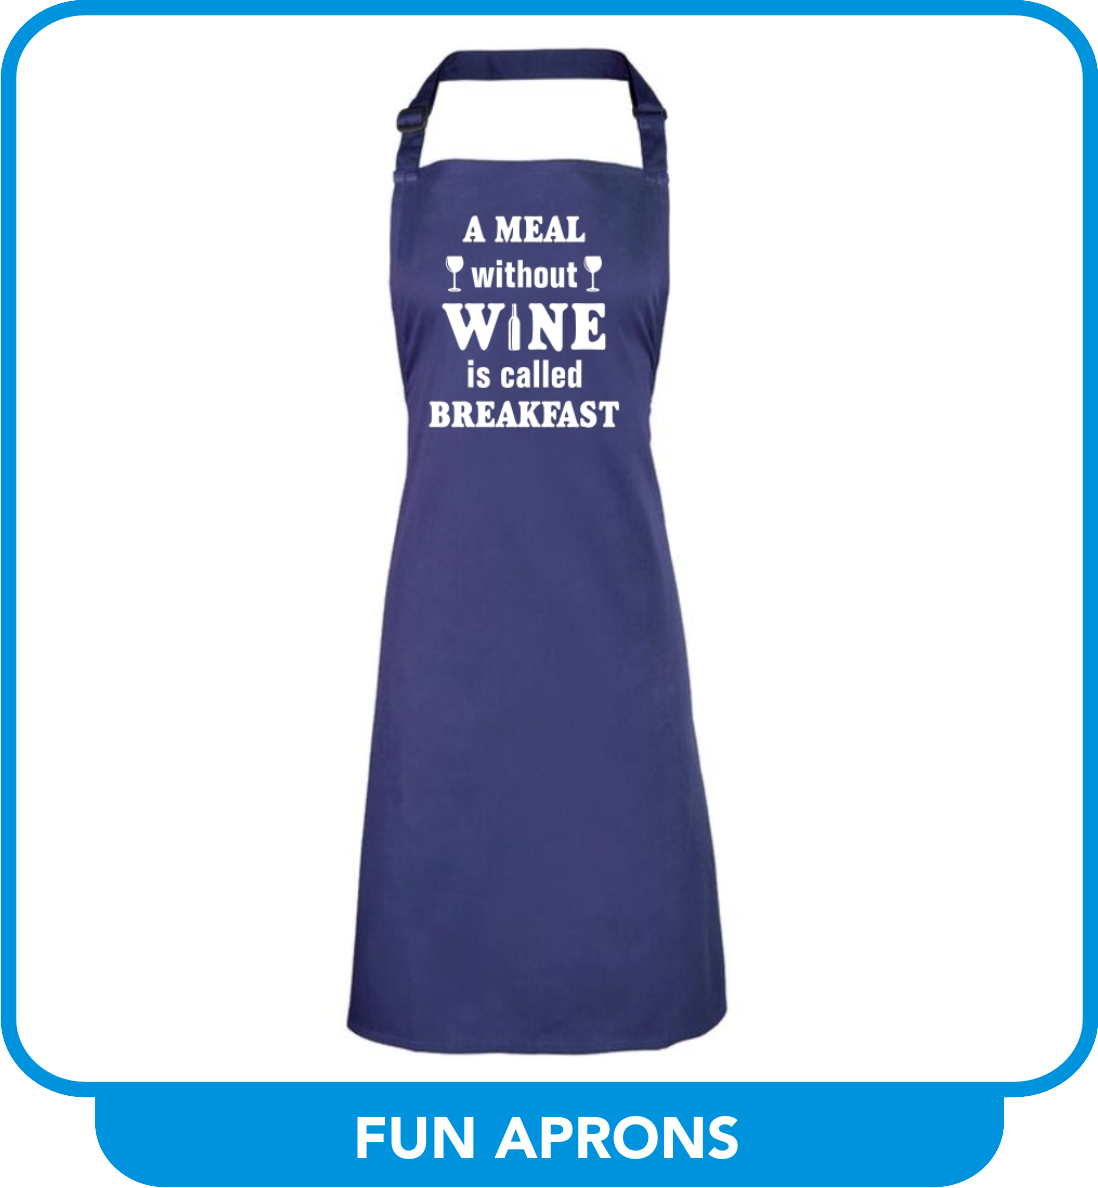 Apron designs and kitchen apron styles apron designs and for Apron designs and kitchen apron styles